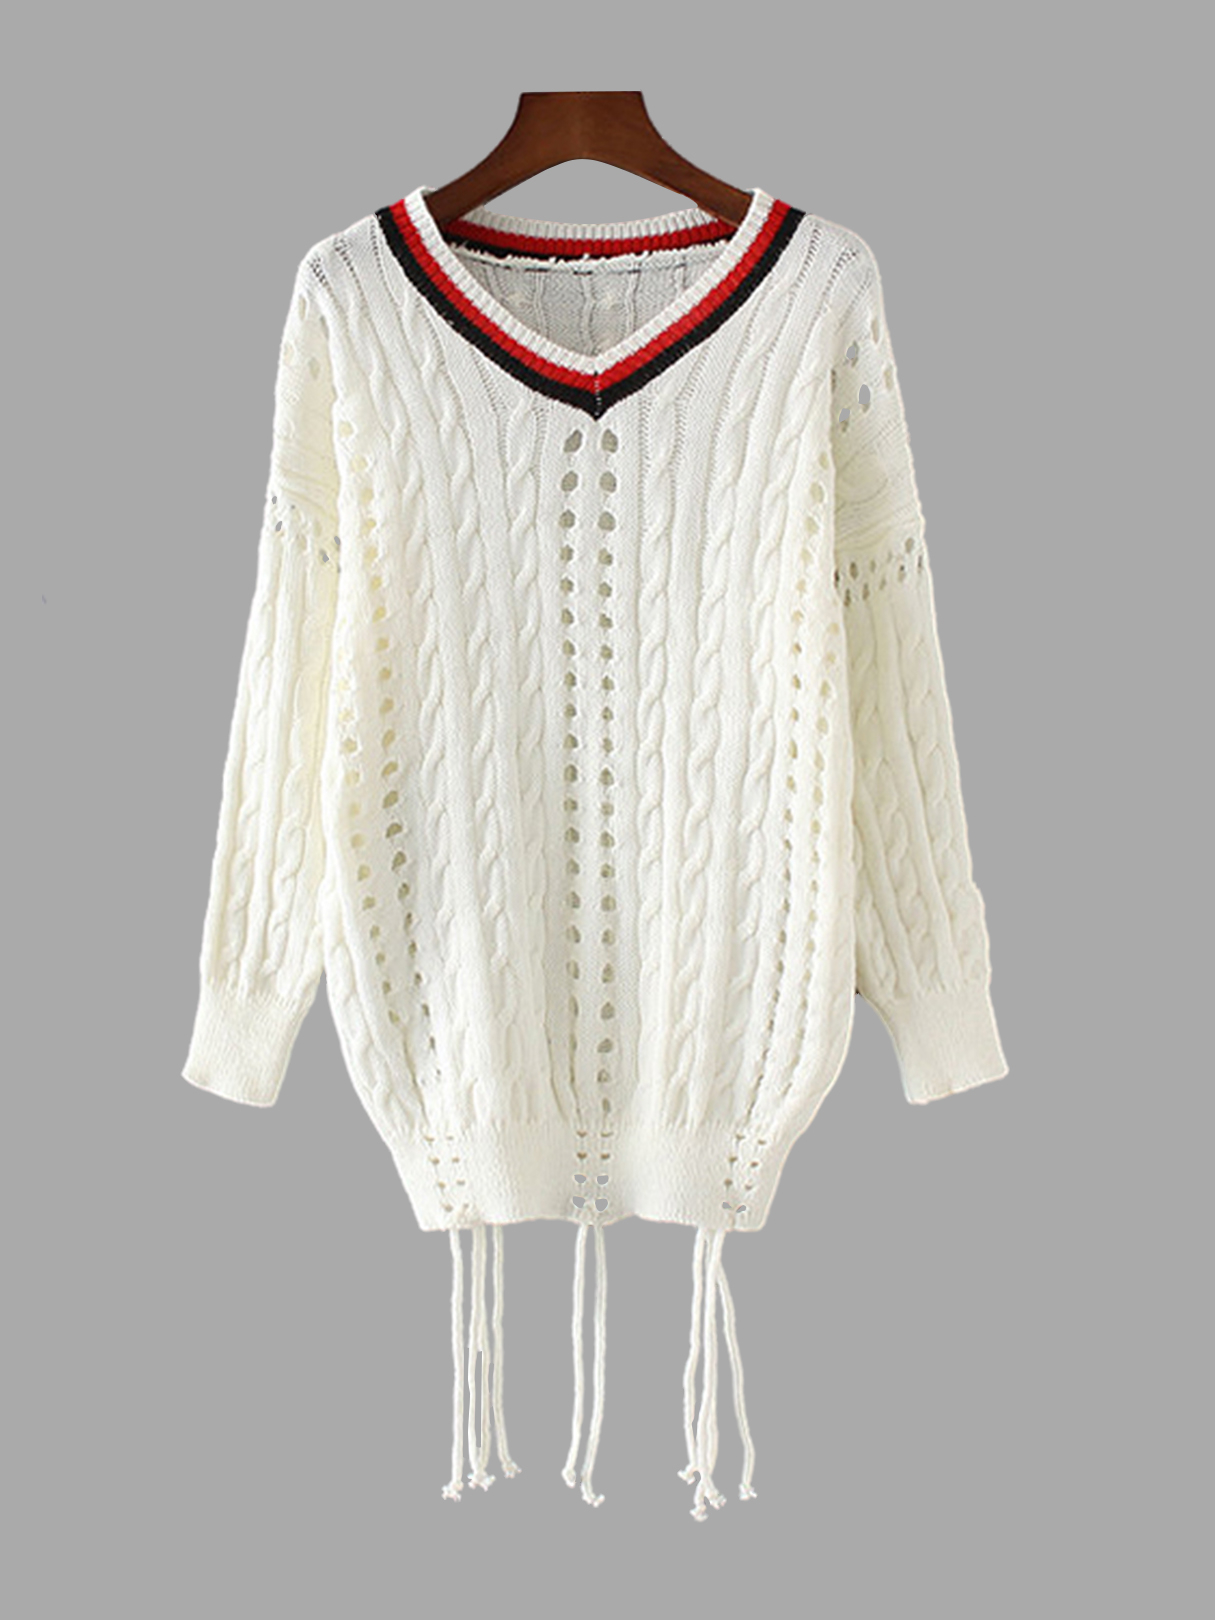 Hollow Out Classic Cable Knit Sweater with Strappy colorblock cable knit sweater